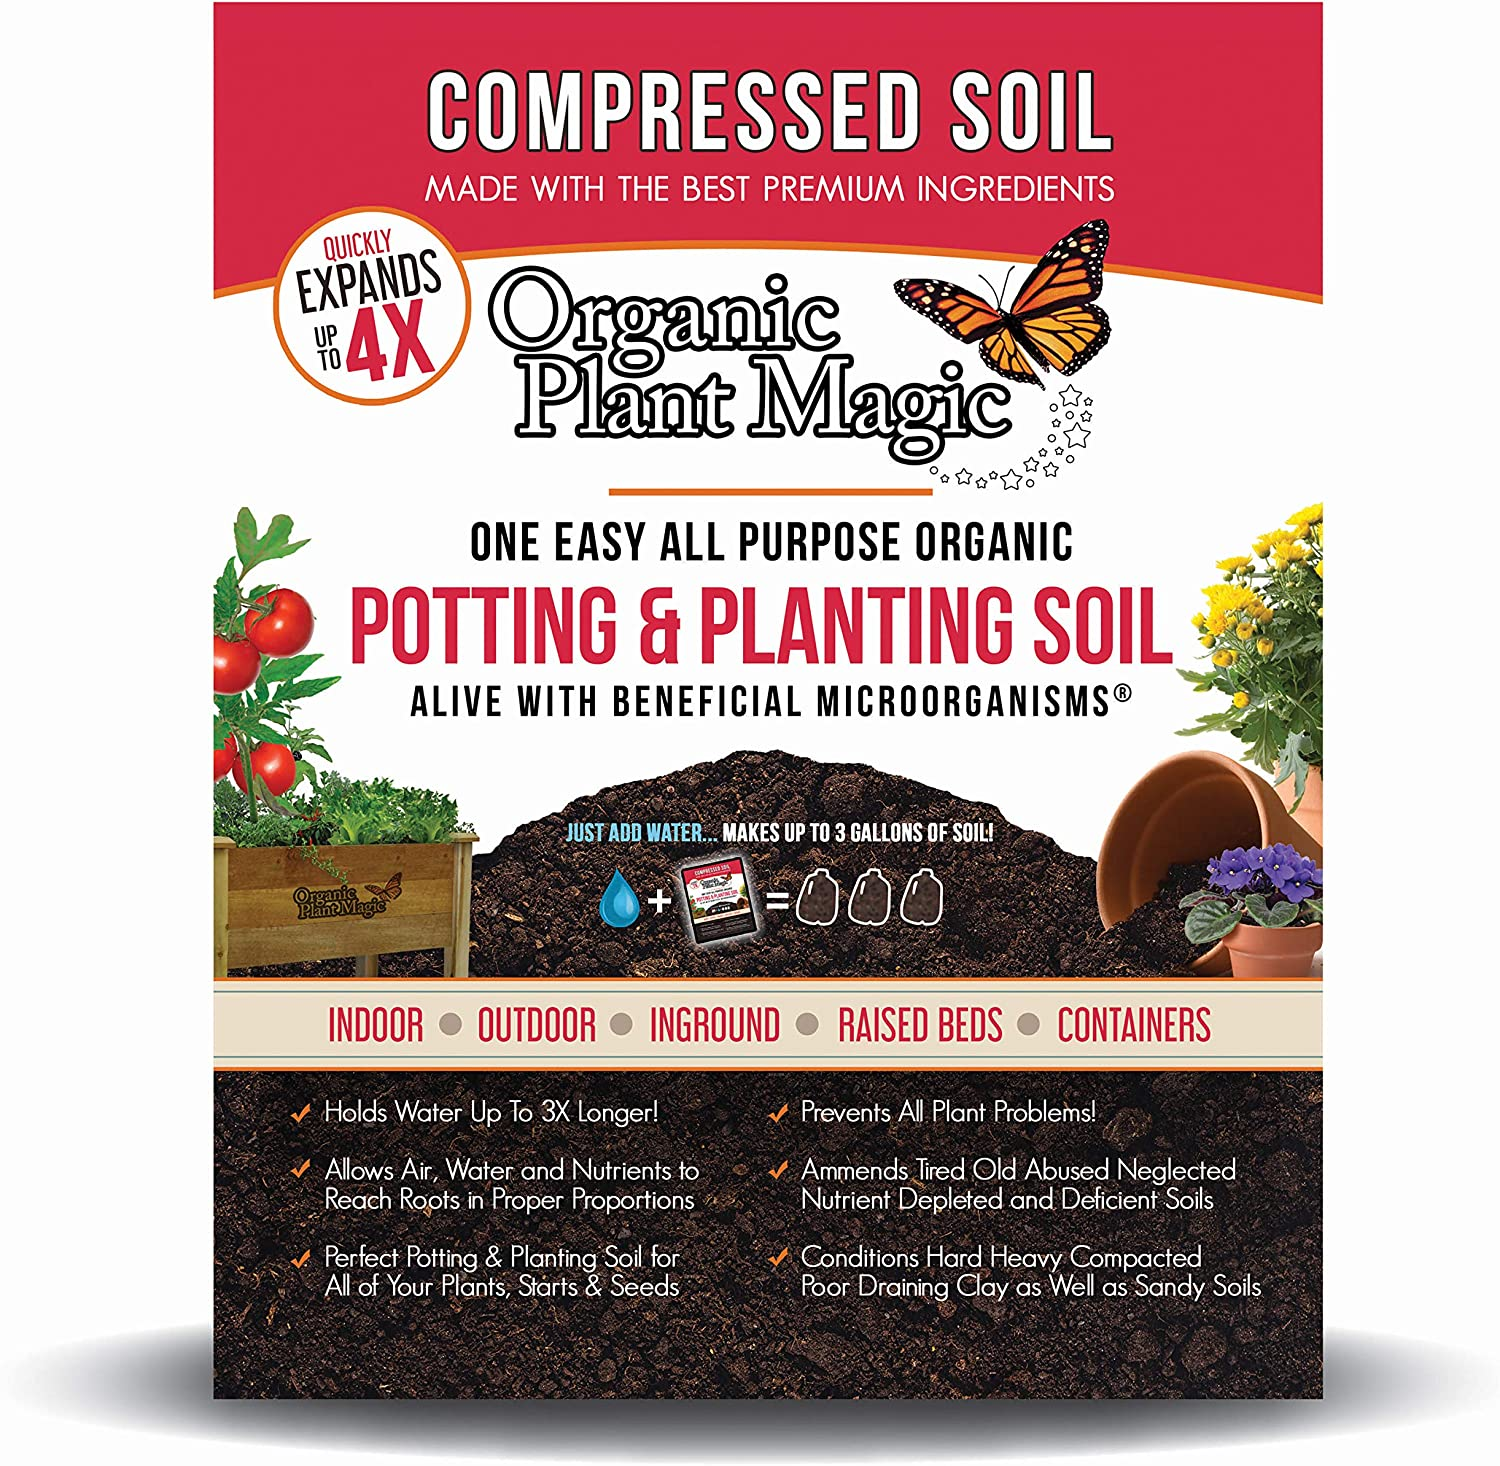 Compressed Organic Potting-Soil for Raised Beds from Organic Plant Magic